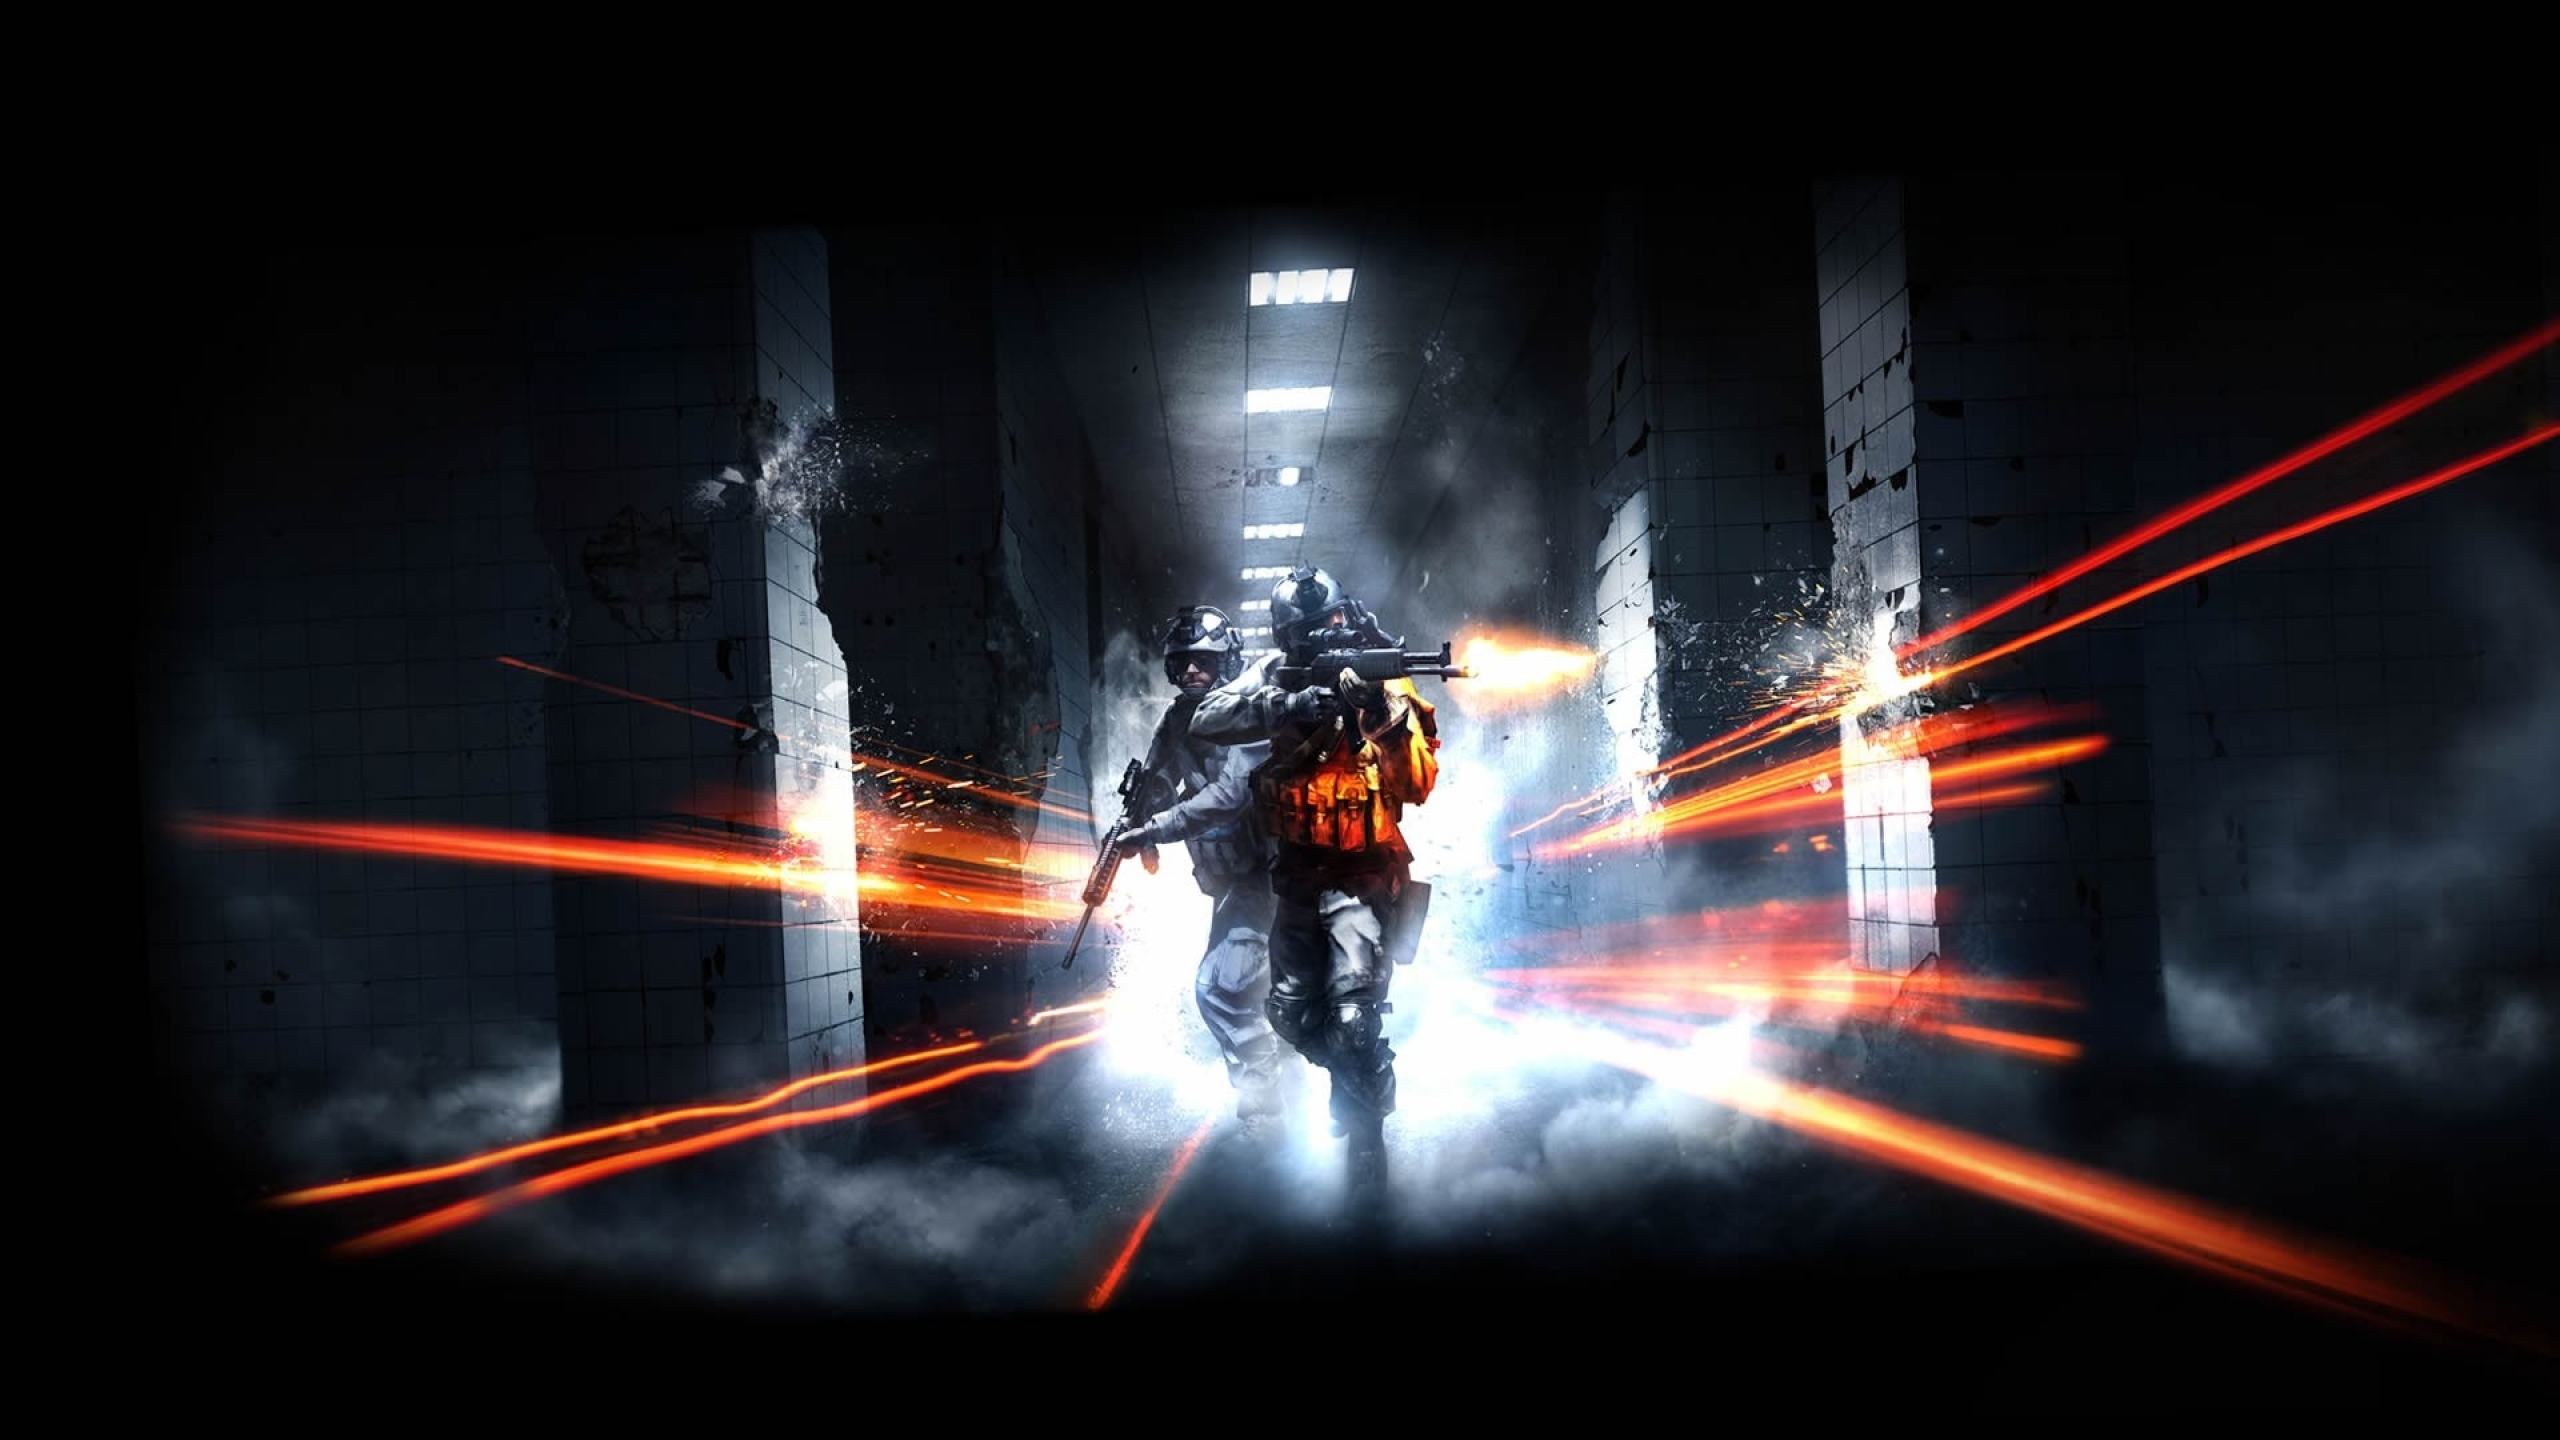 2560x1440 video games battlefield guns dice shooter fps gaming 2560x1440